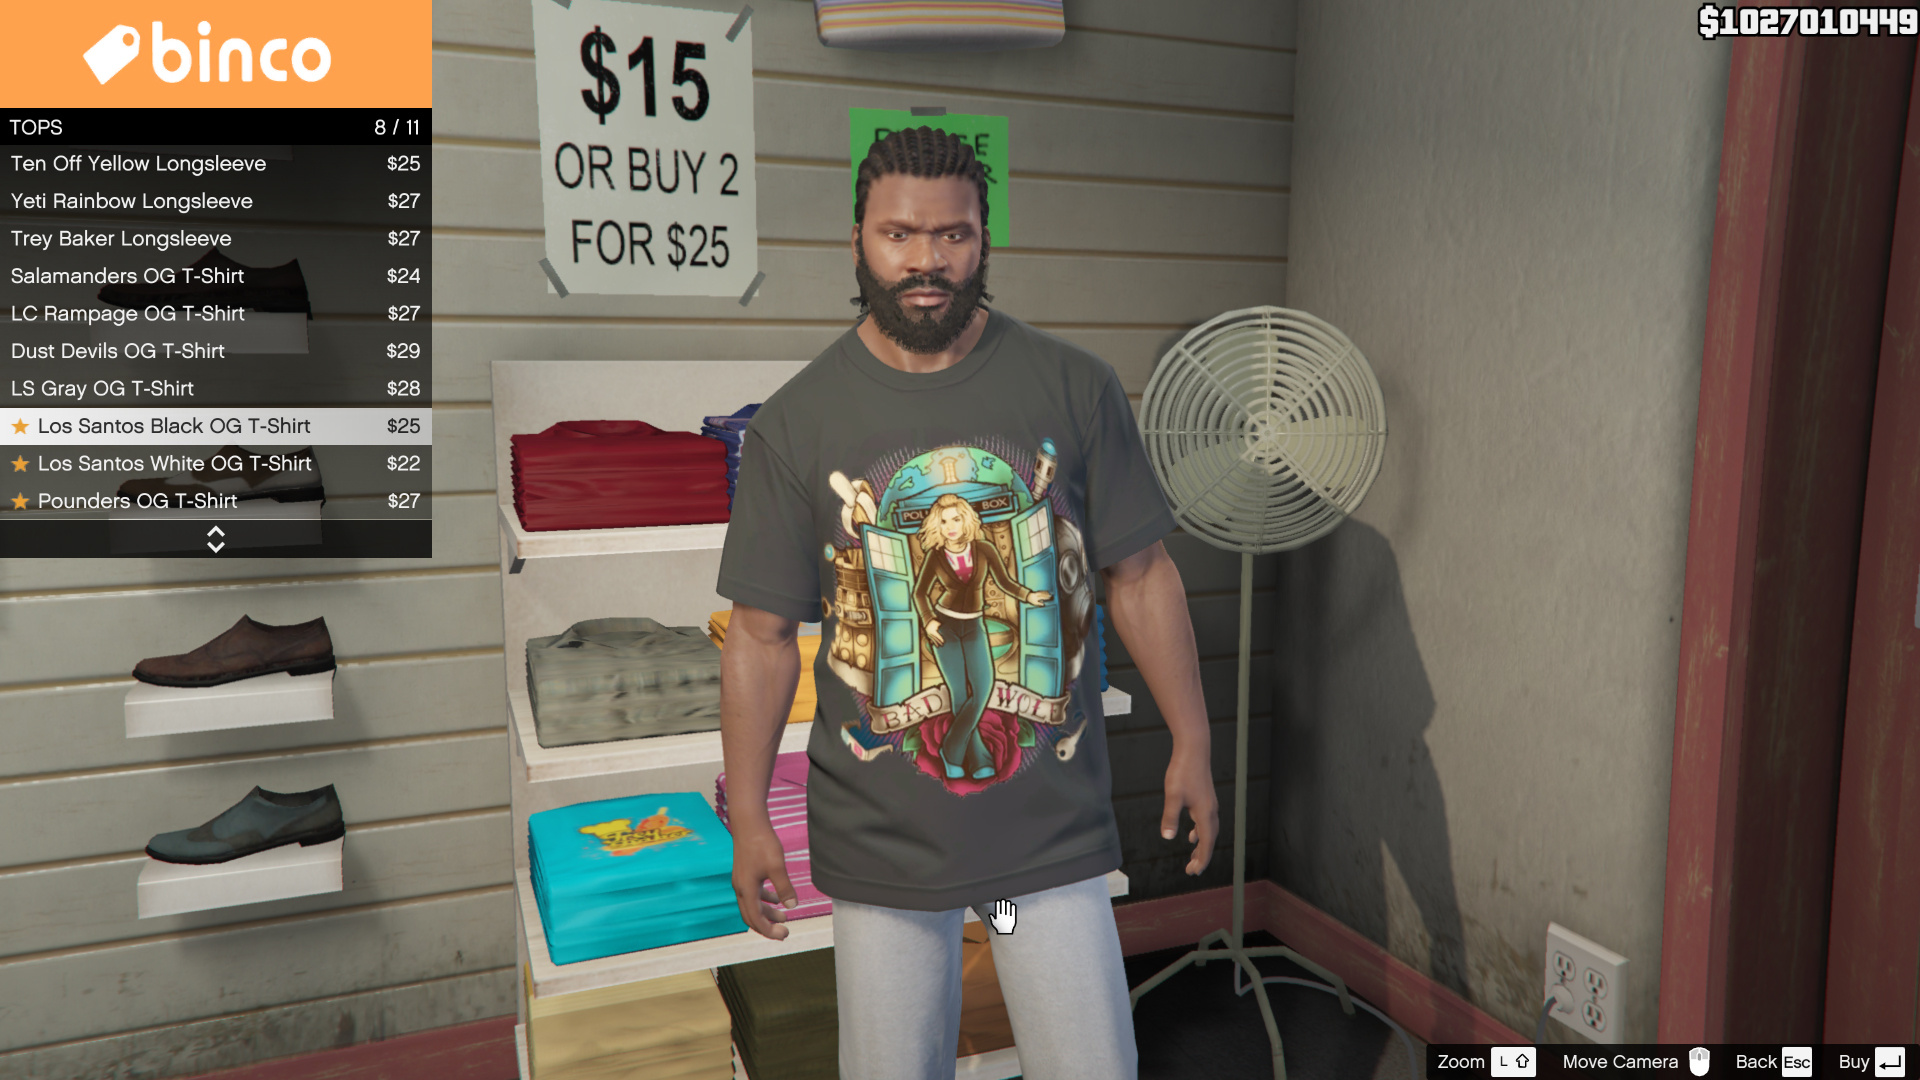 Black t shirt michaels - 3ae0e5 Gta5 2015 05 27 21 56 01 262